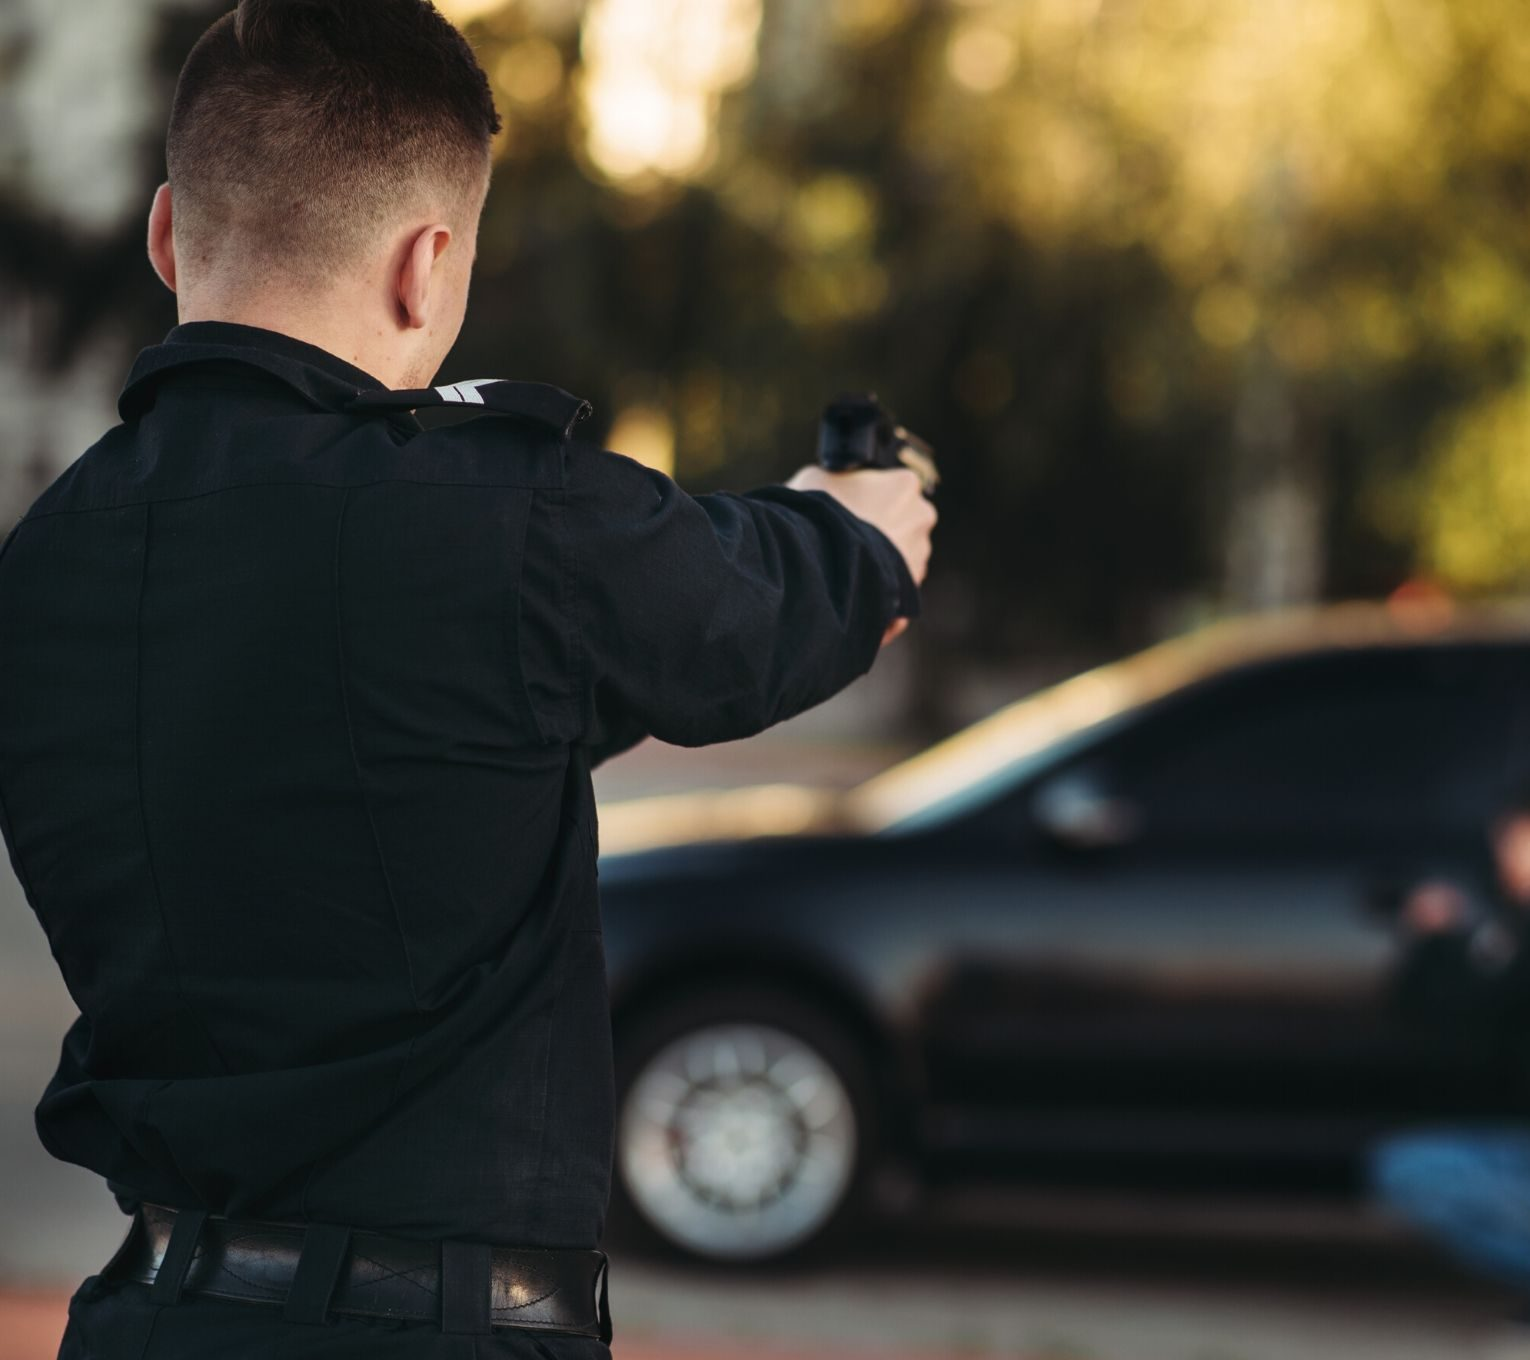 a police officer pointing a gun at someone